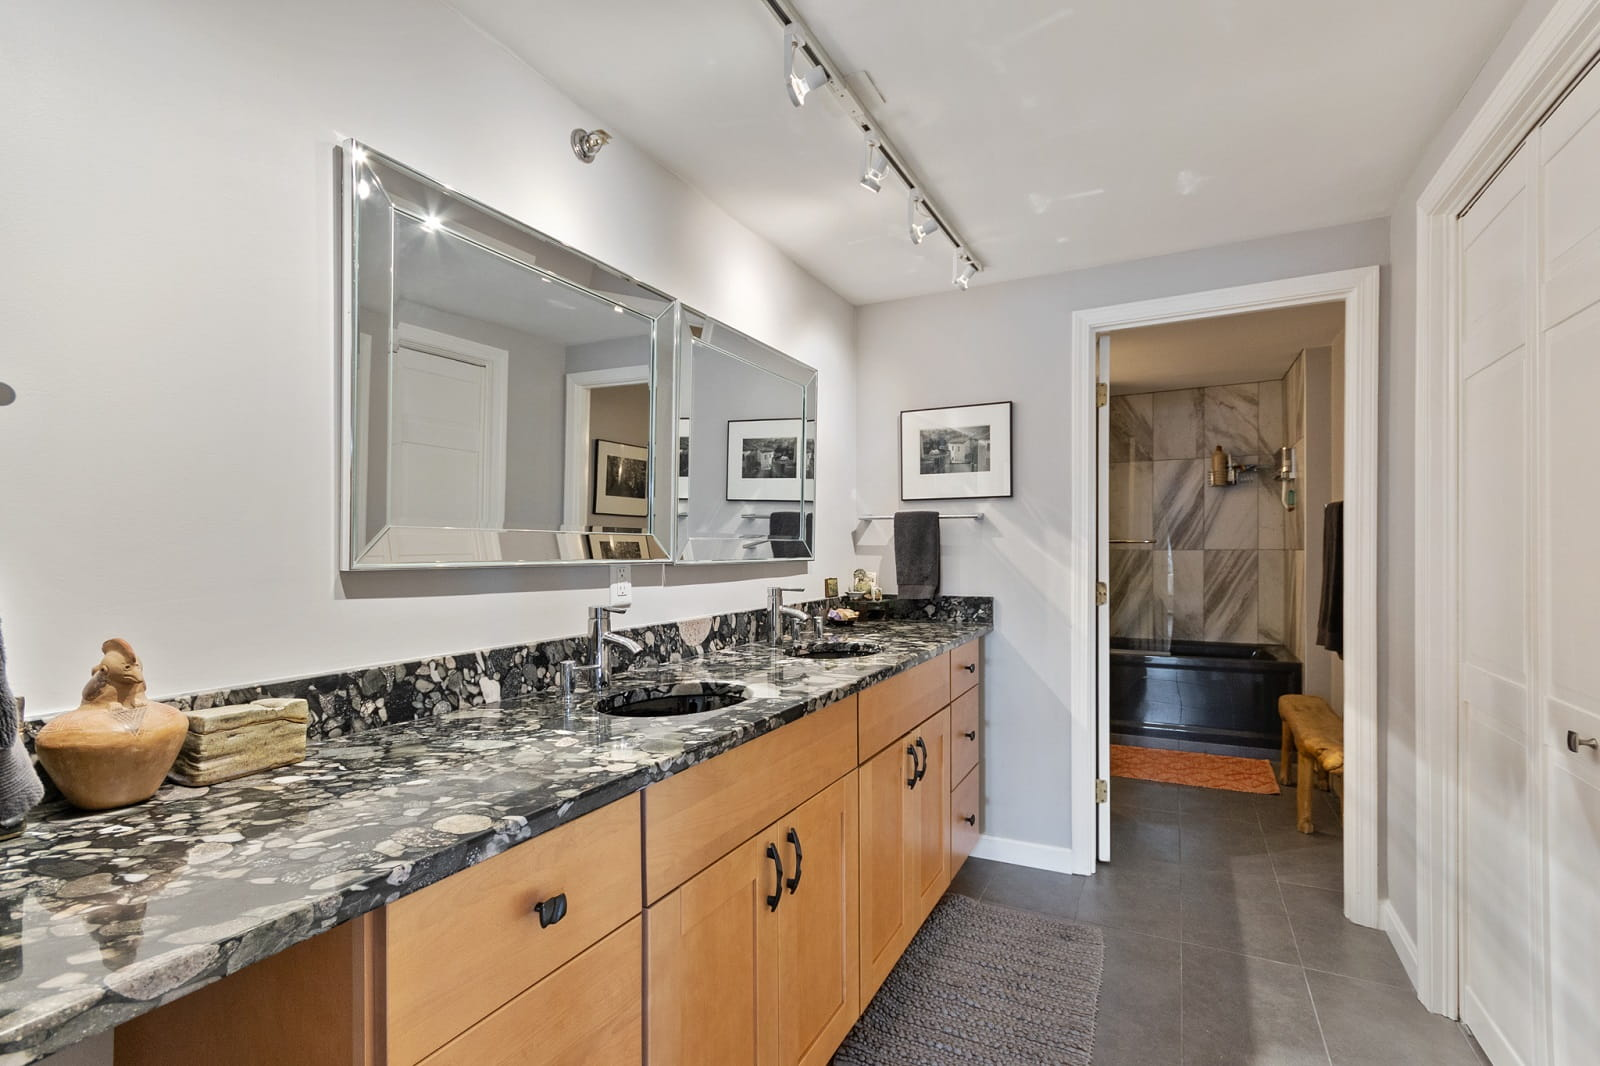 Real Estate Photography in Lowell - MA - USA - Bathroom View